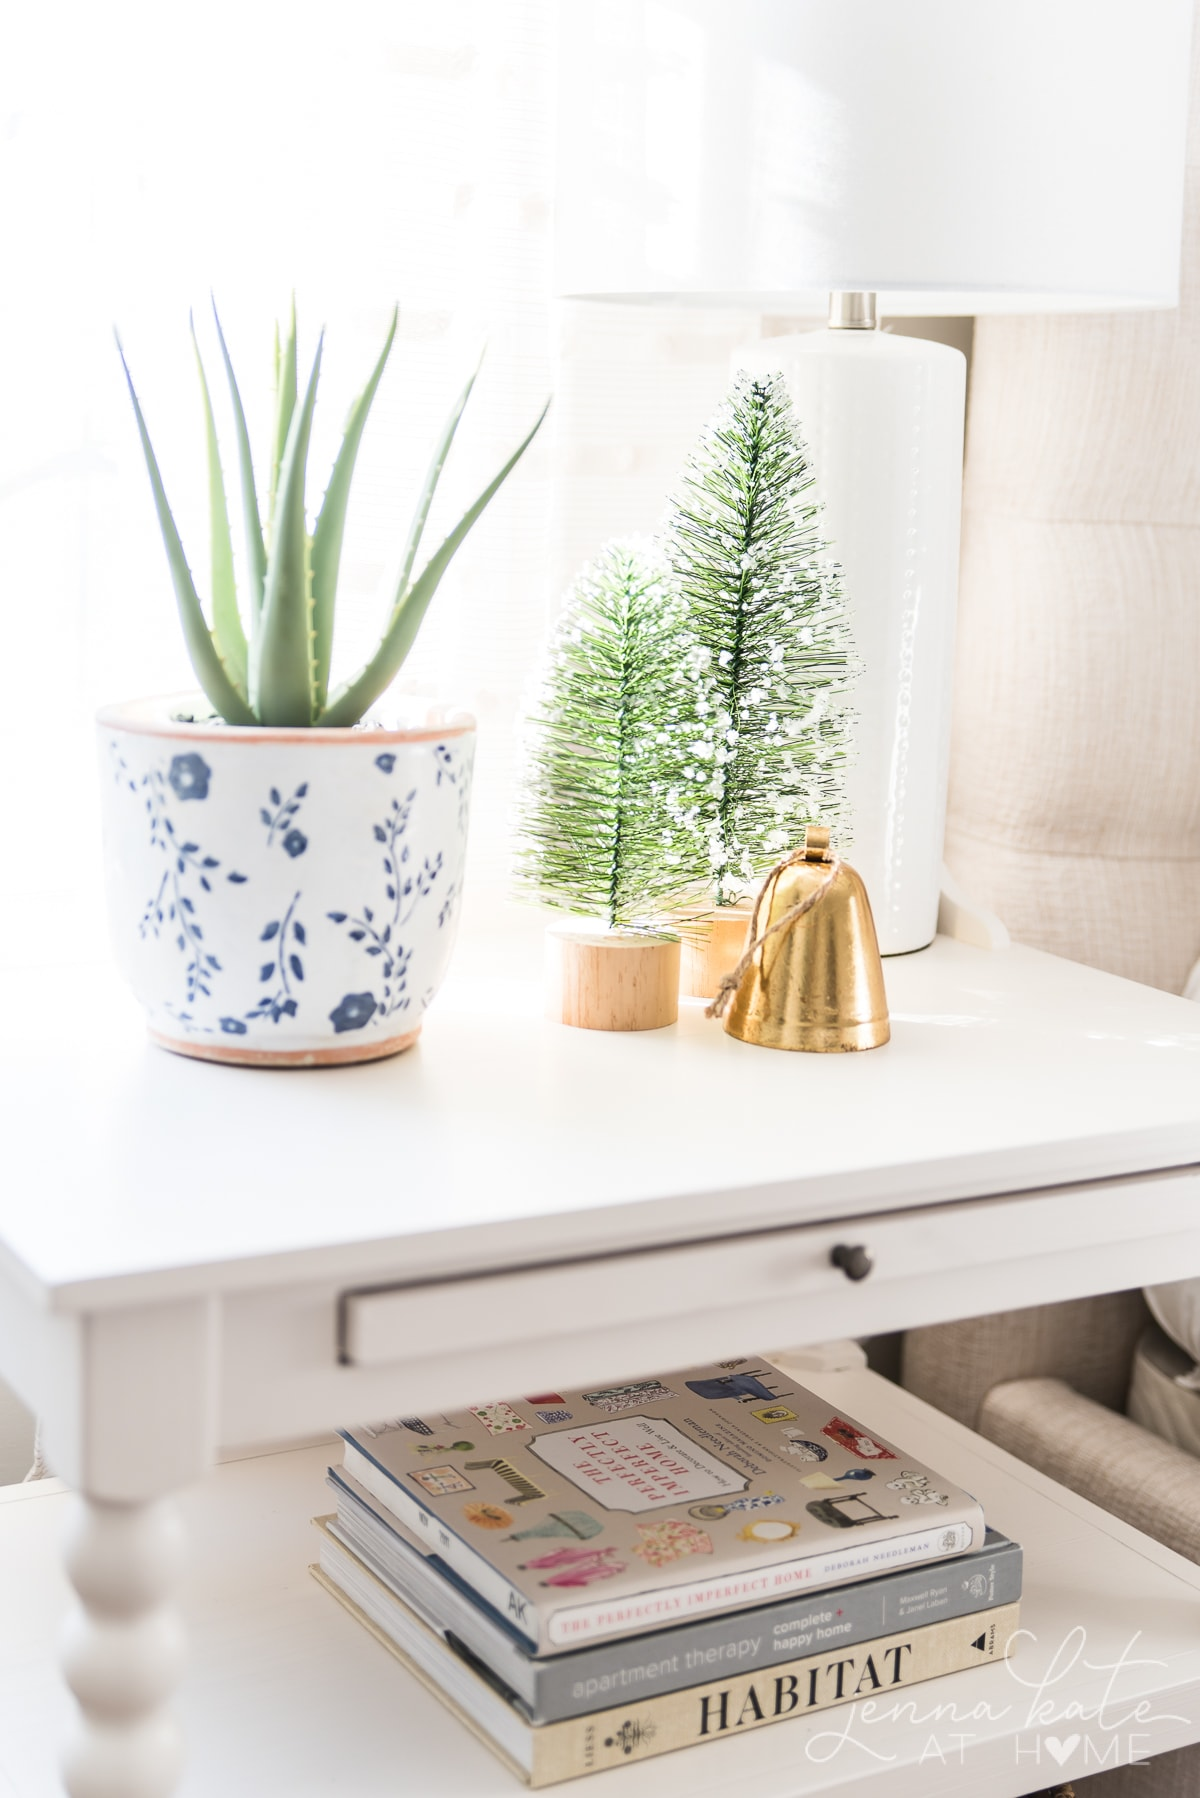 Aloe plant, bottle brush trees and a small bell on the bedside table